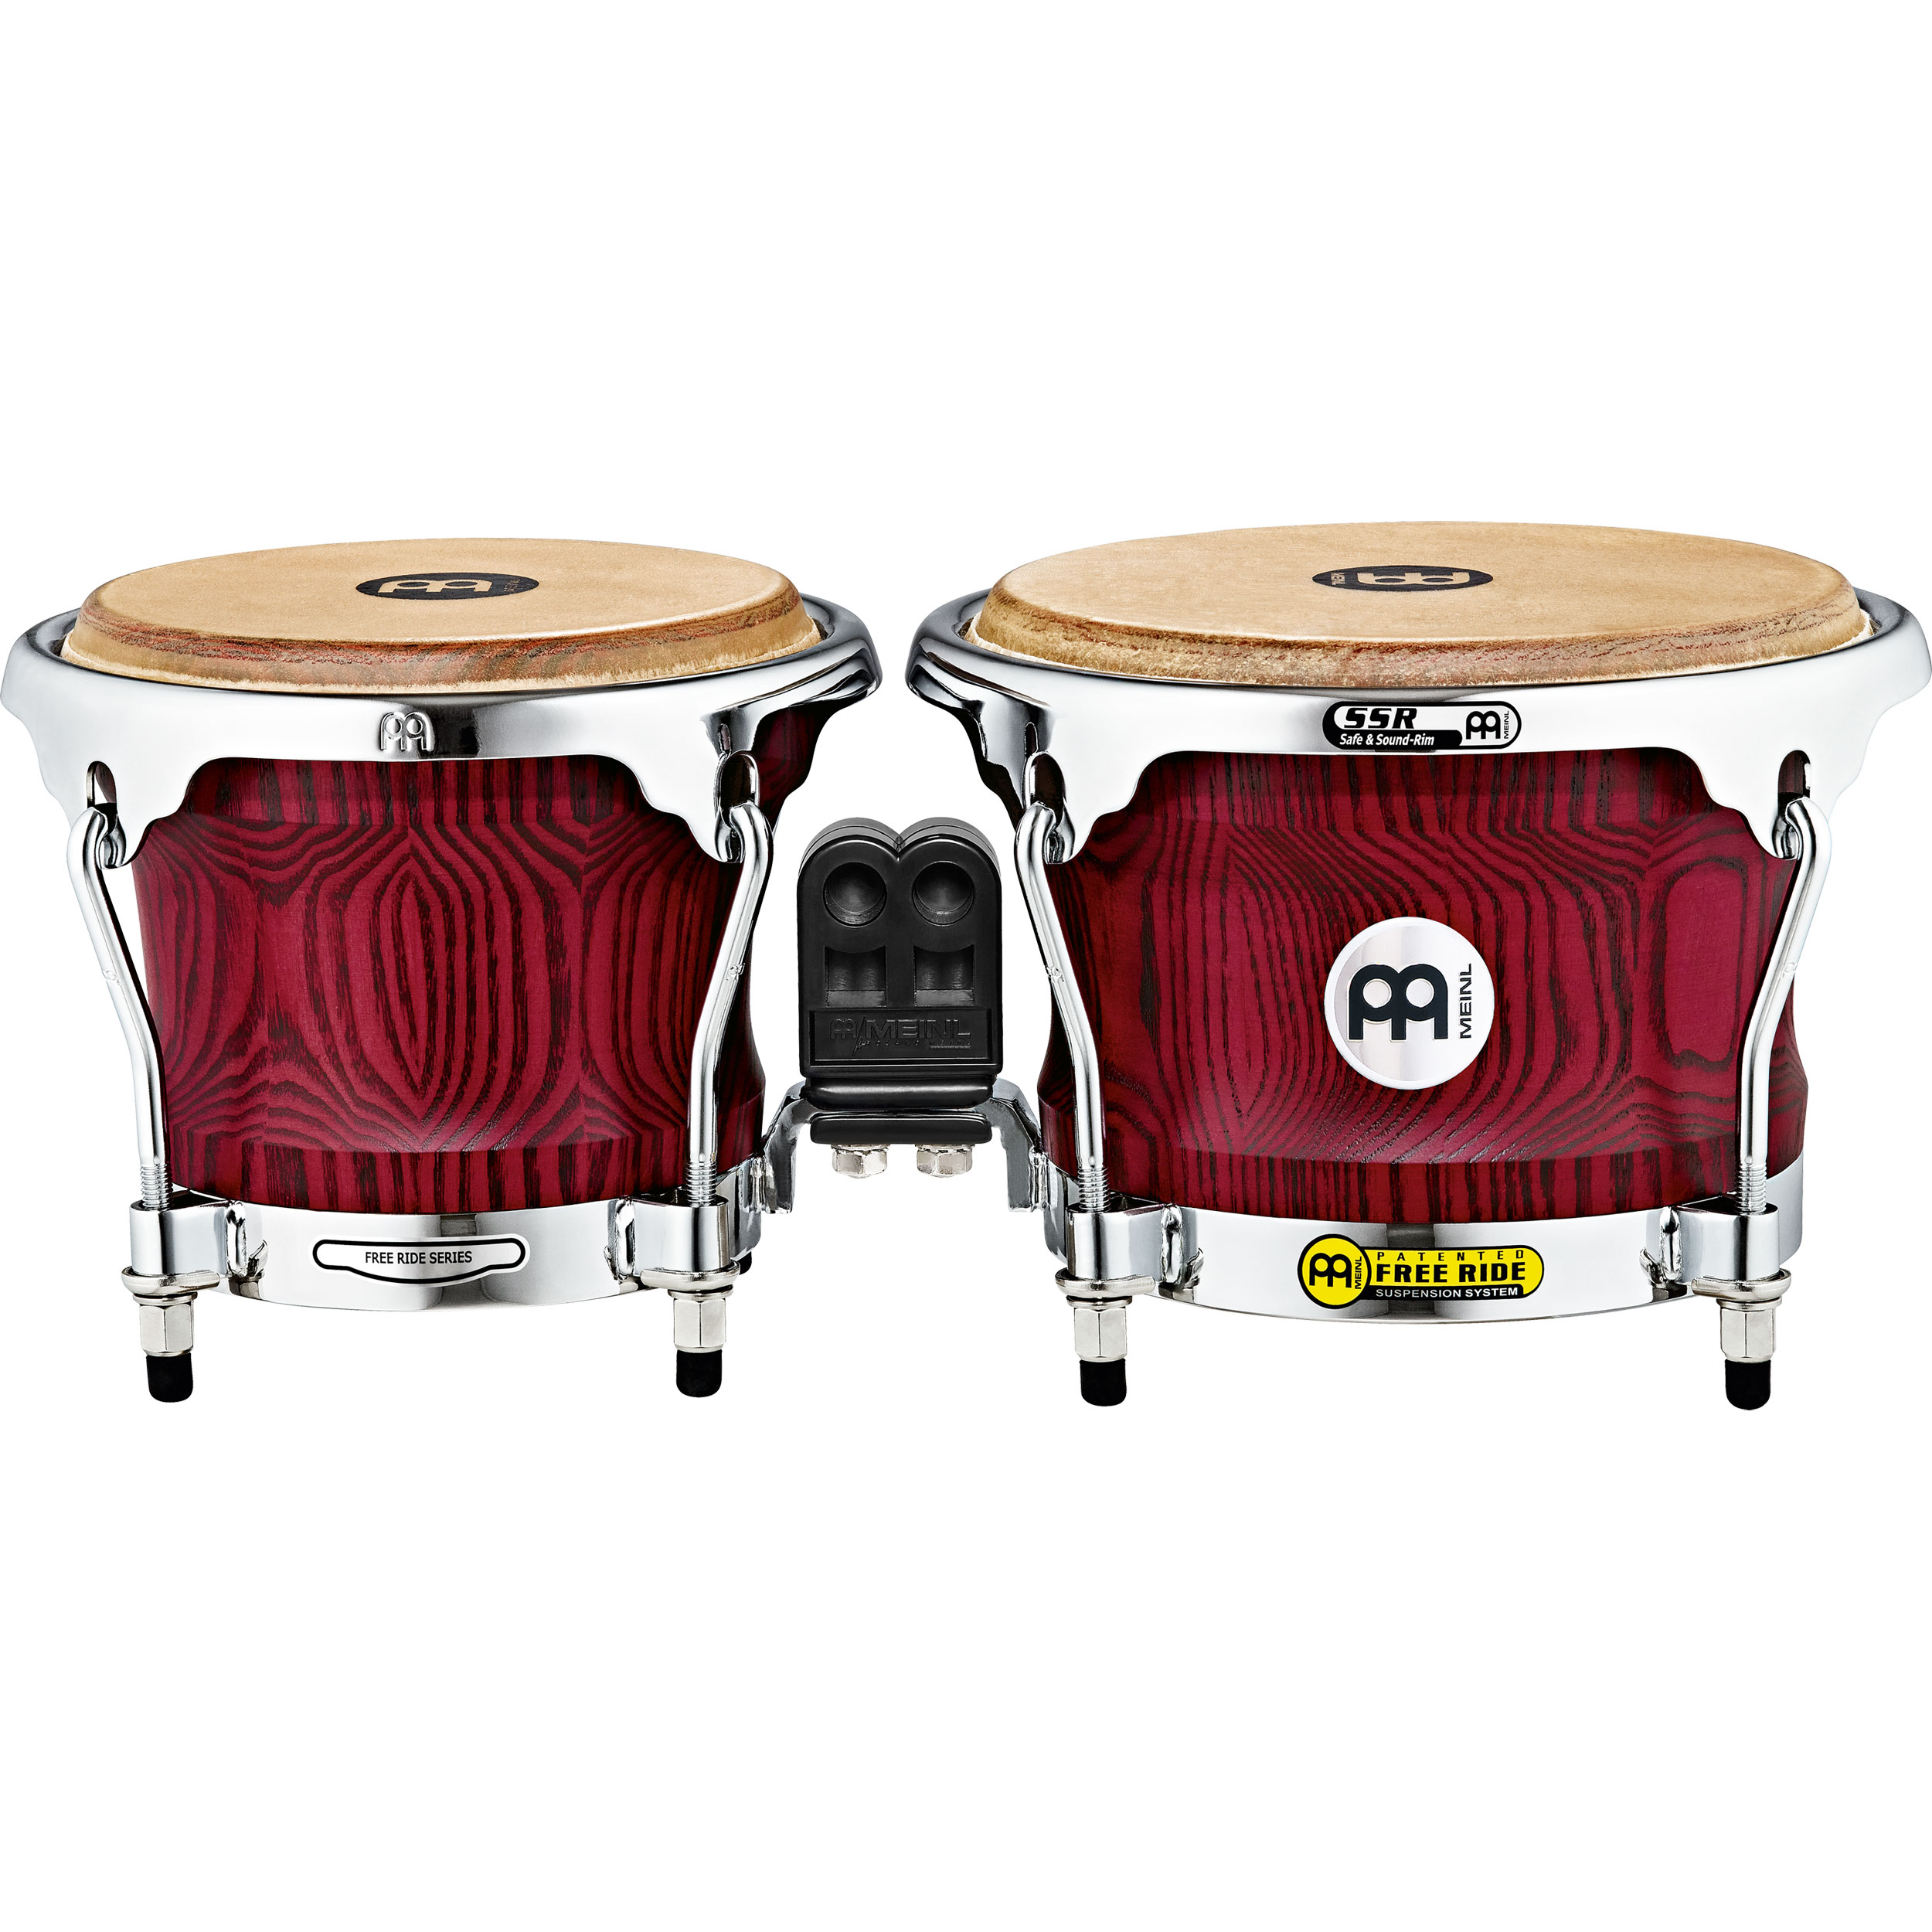 "Meinl 7"" & 8.5"" Woodcraft Series Bongos in Vintage Red"